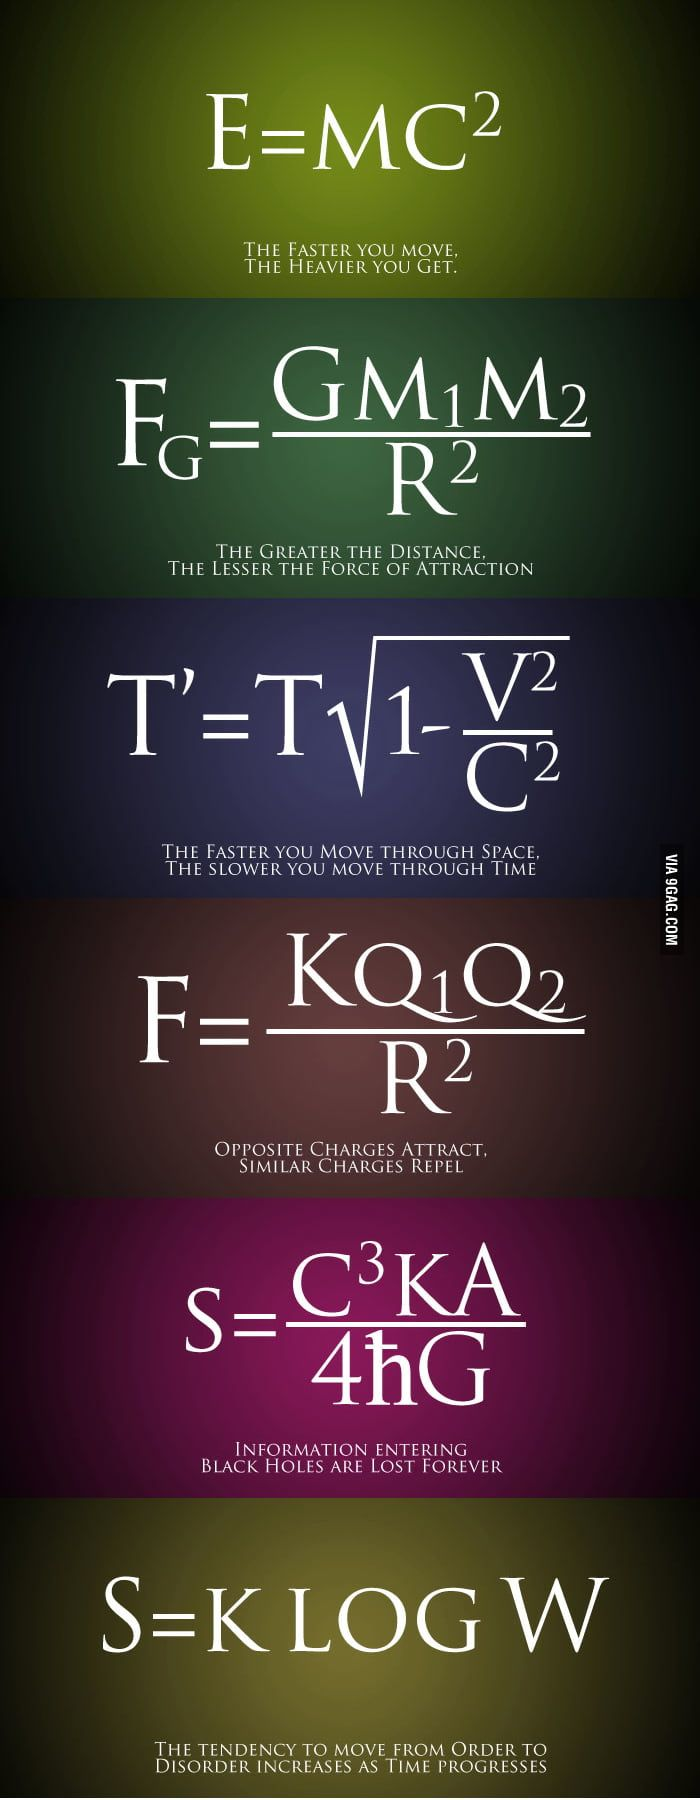 Words of wisdom found in math formulas